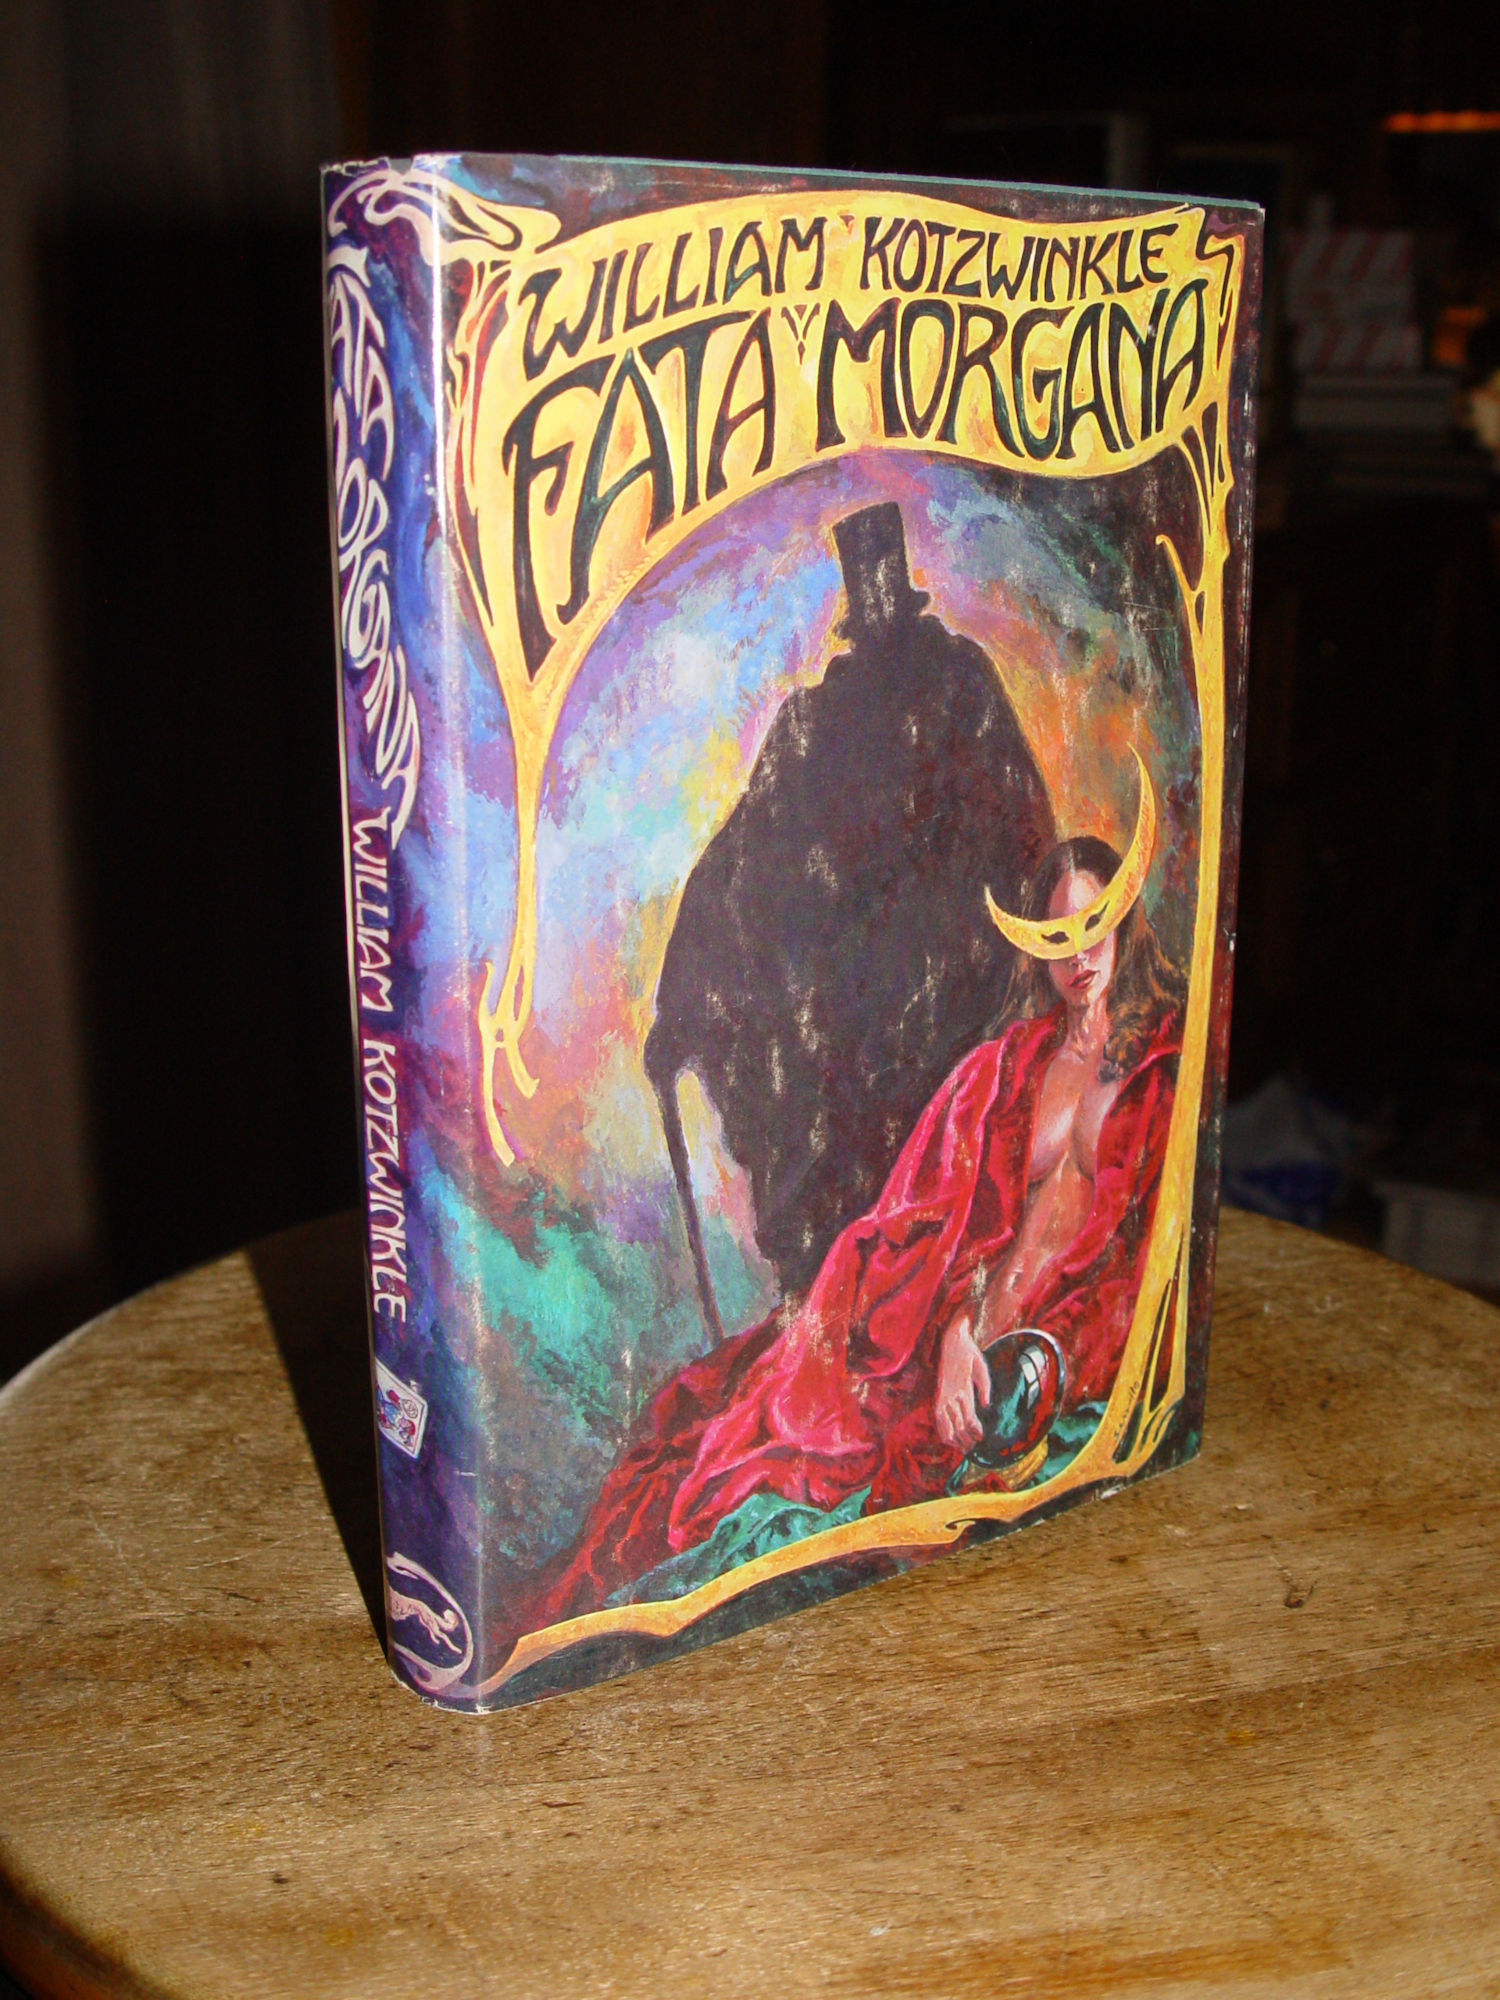 Fata Morgana by William                                         Kotzwinkle 1977 Edition -                                         Mystery and Intrigue